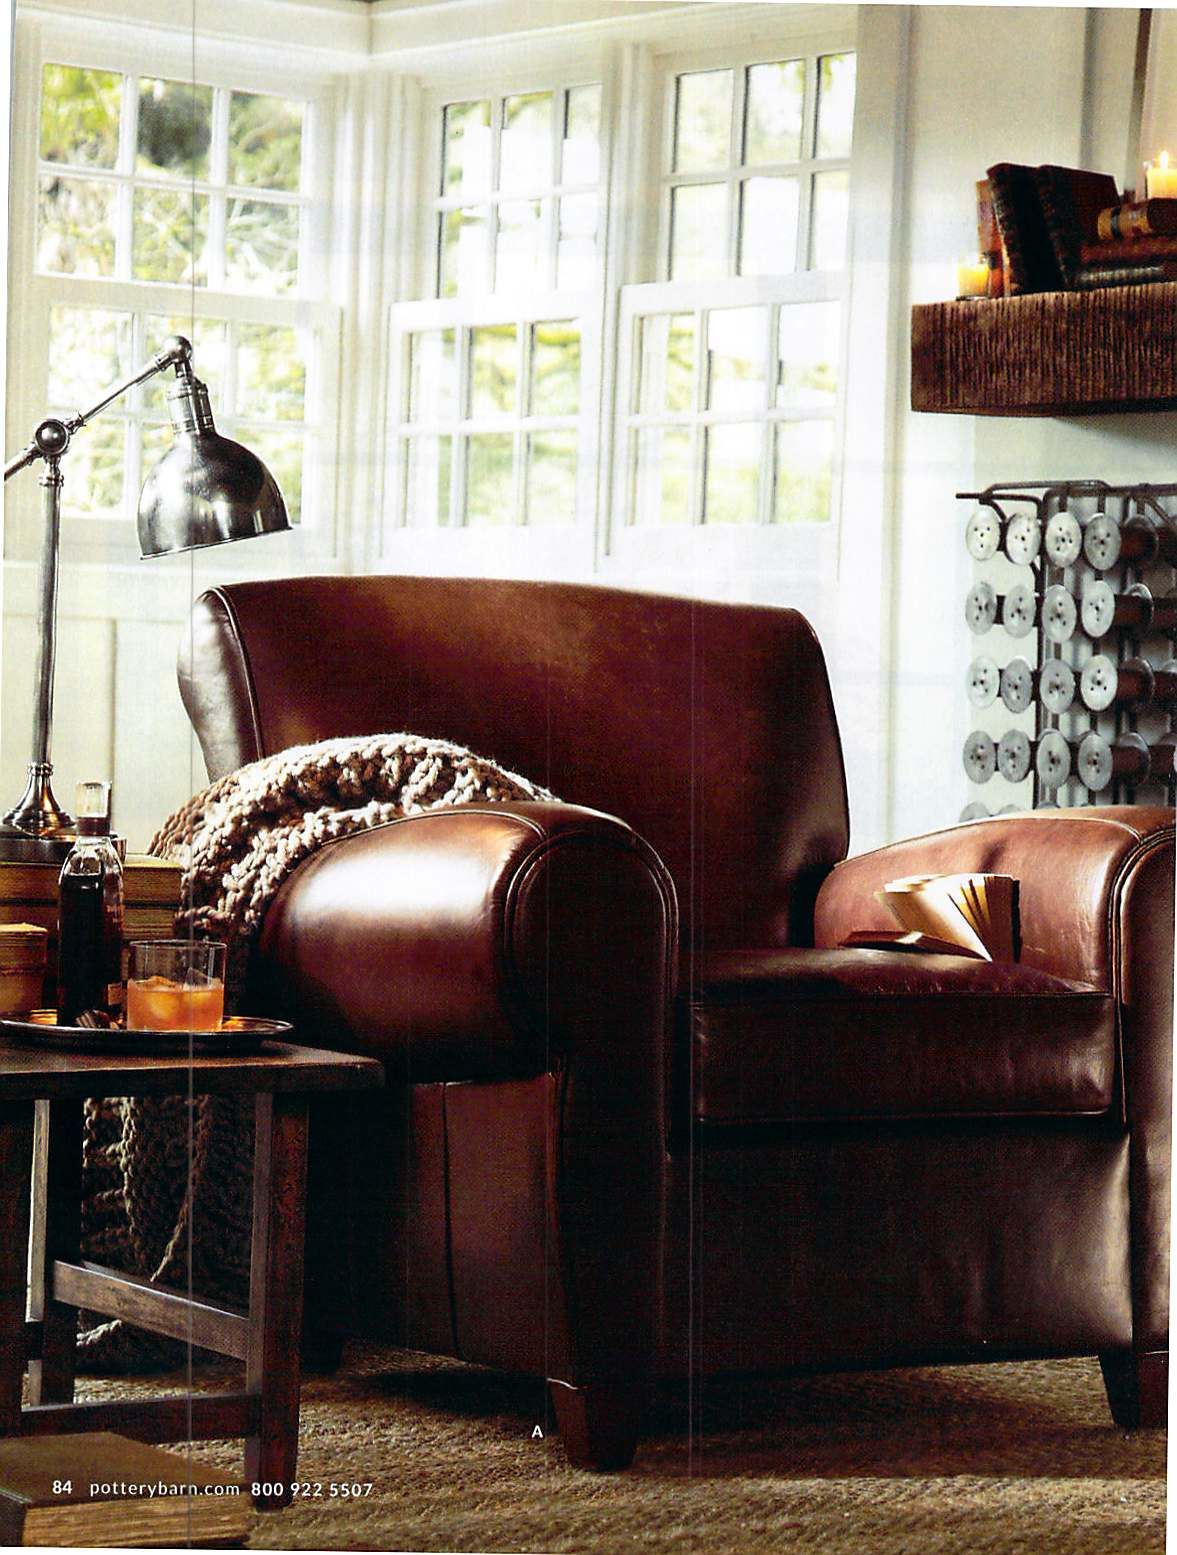 Pottery Barn March 2013 Love The Shelf On The Wall Looks